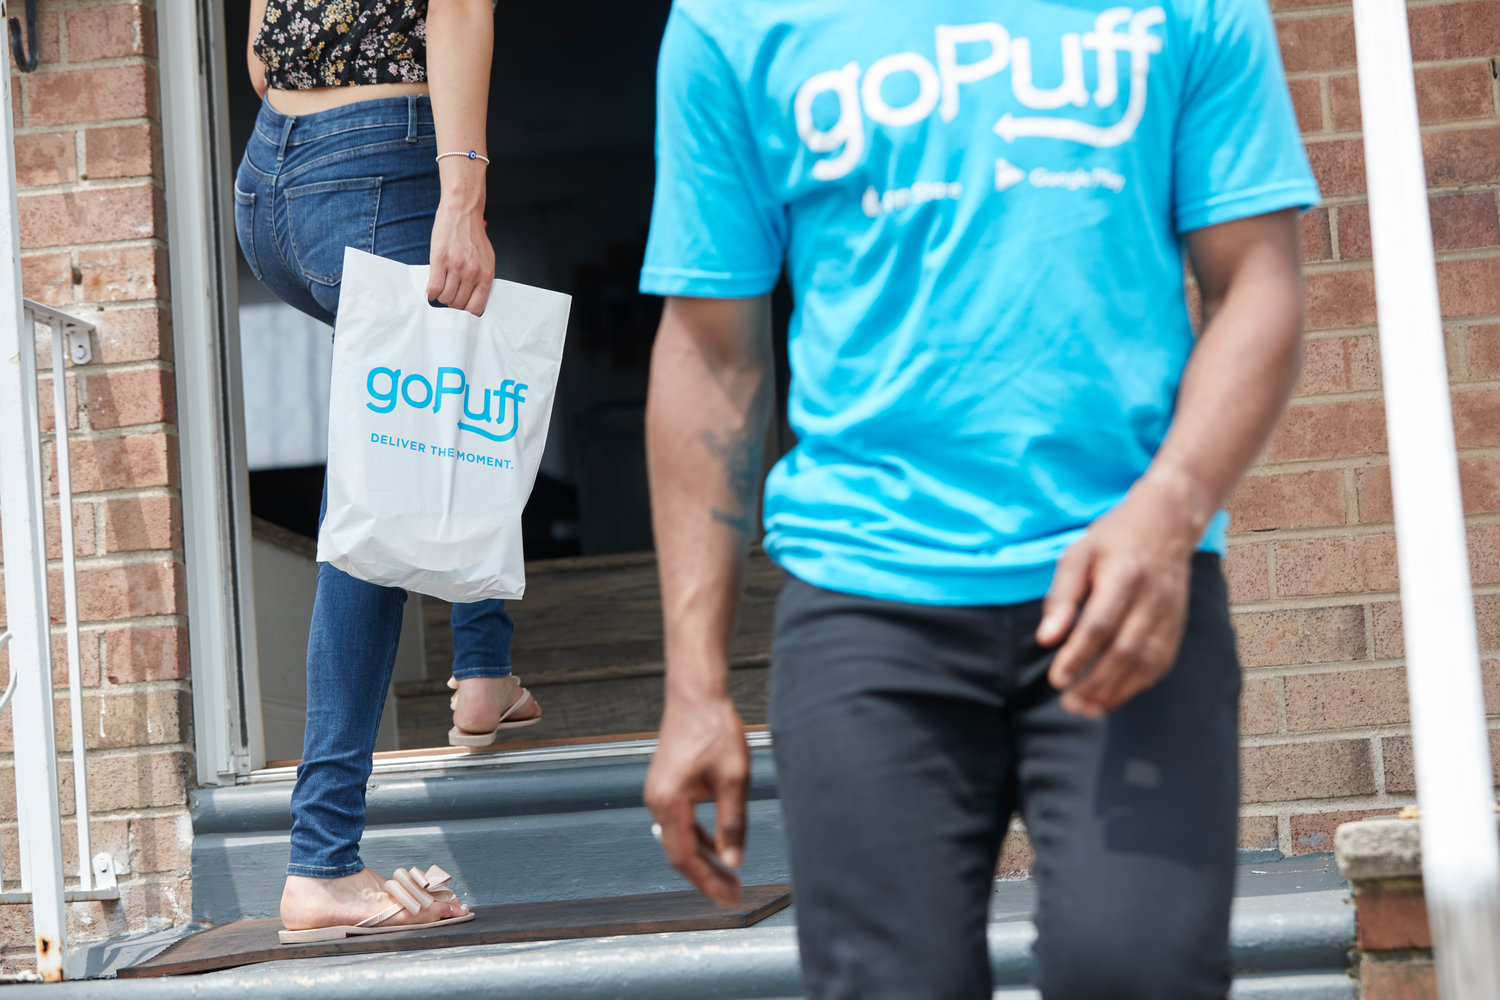 Customers can receive snacks and household items at their homes via goPuff.